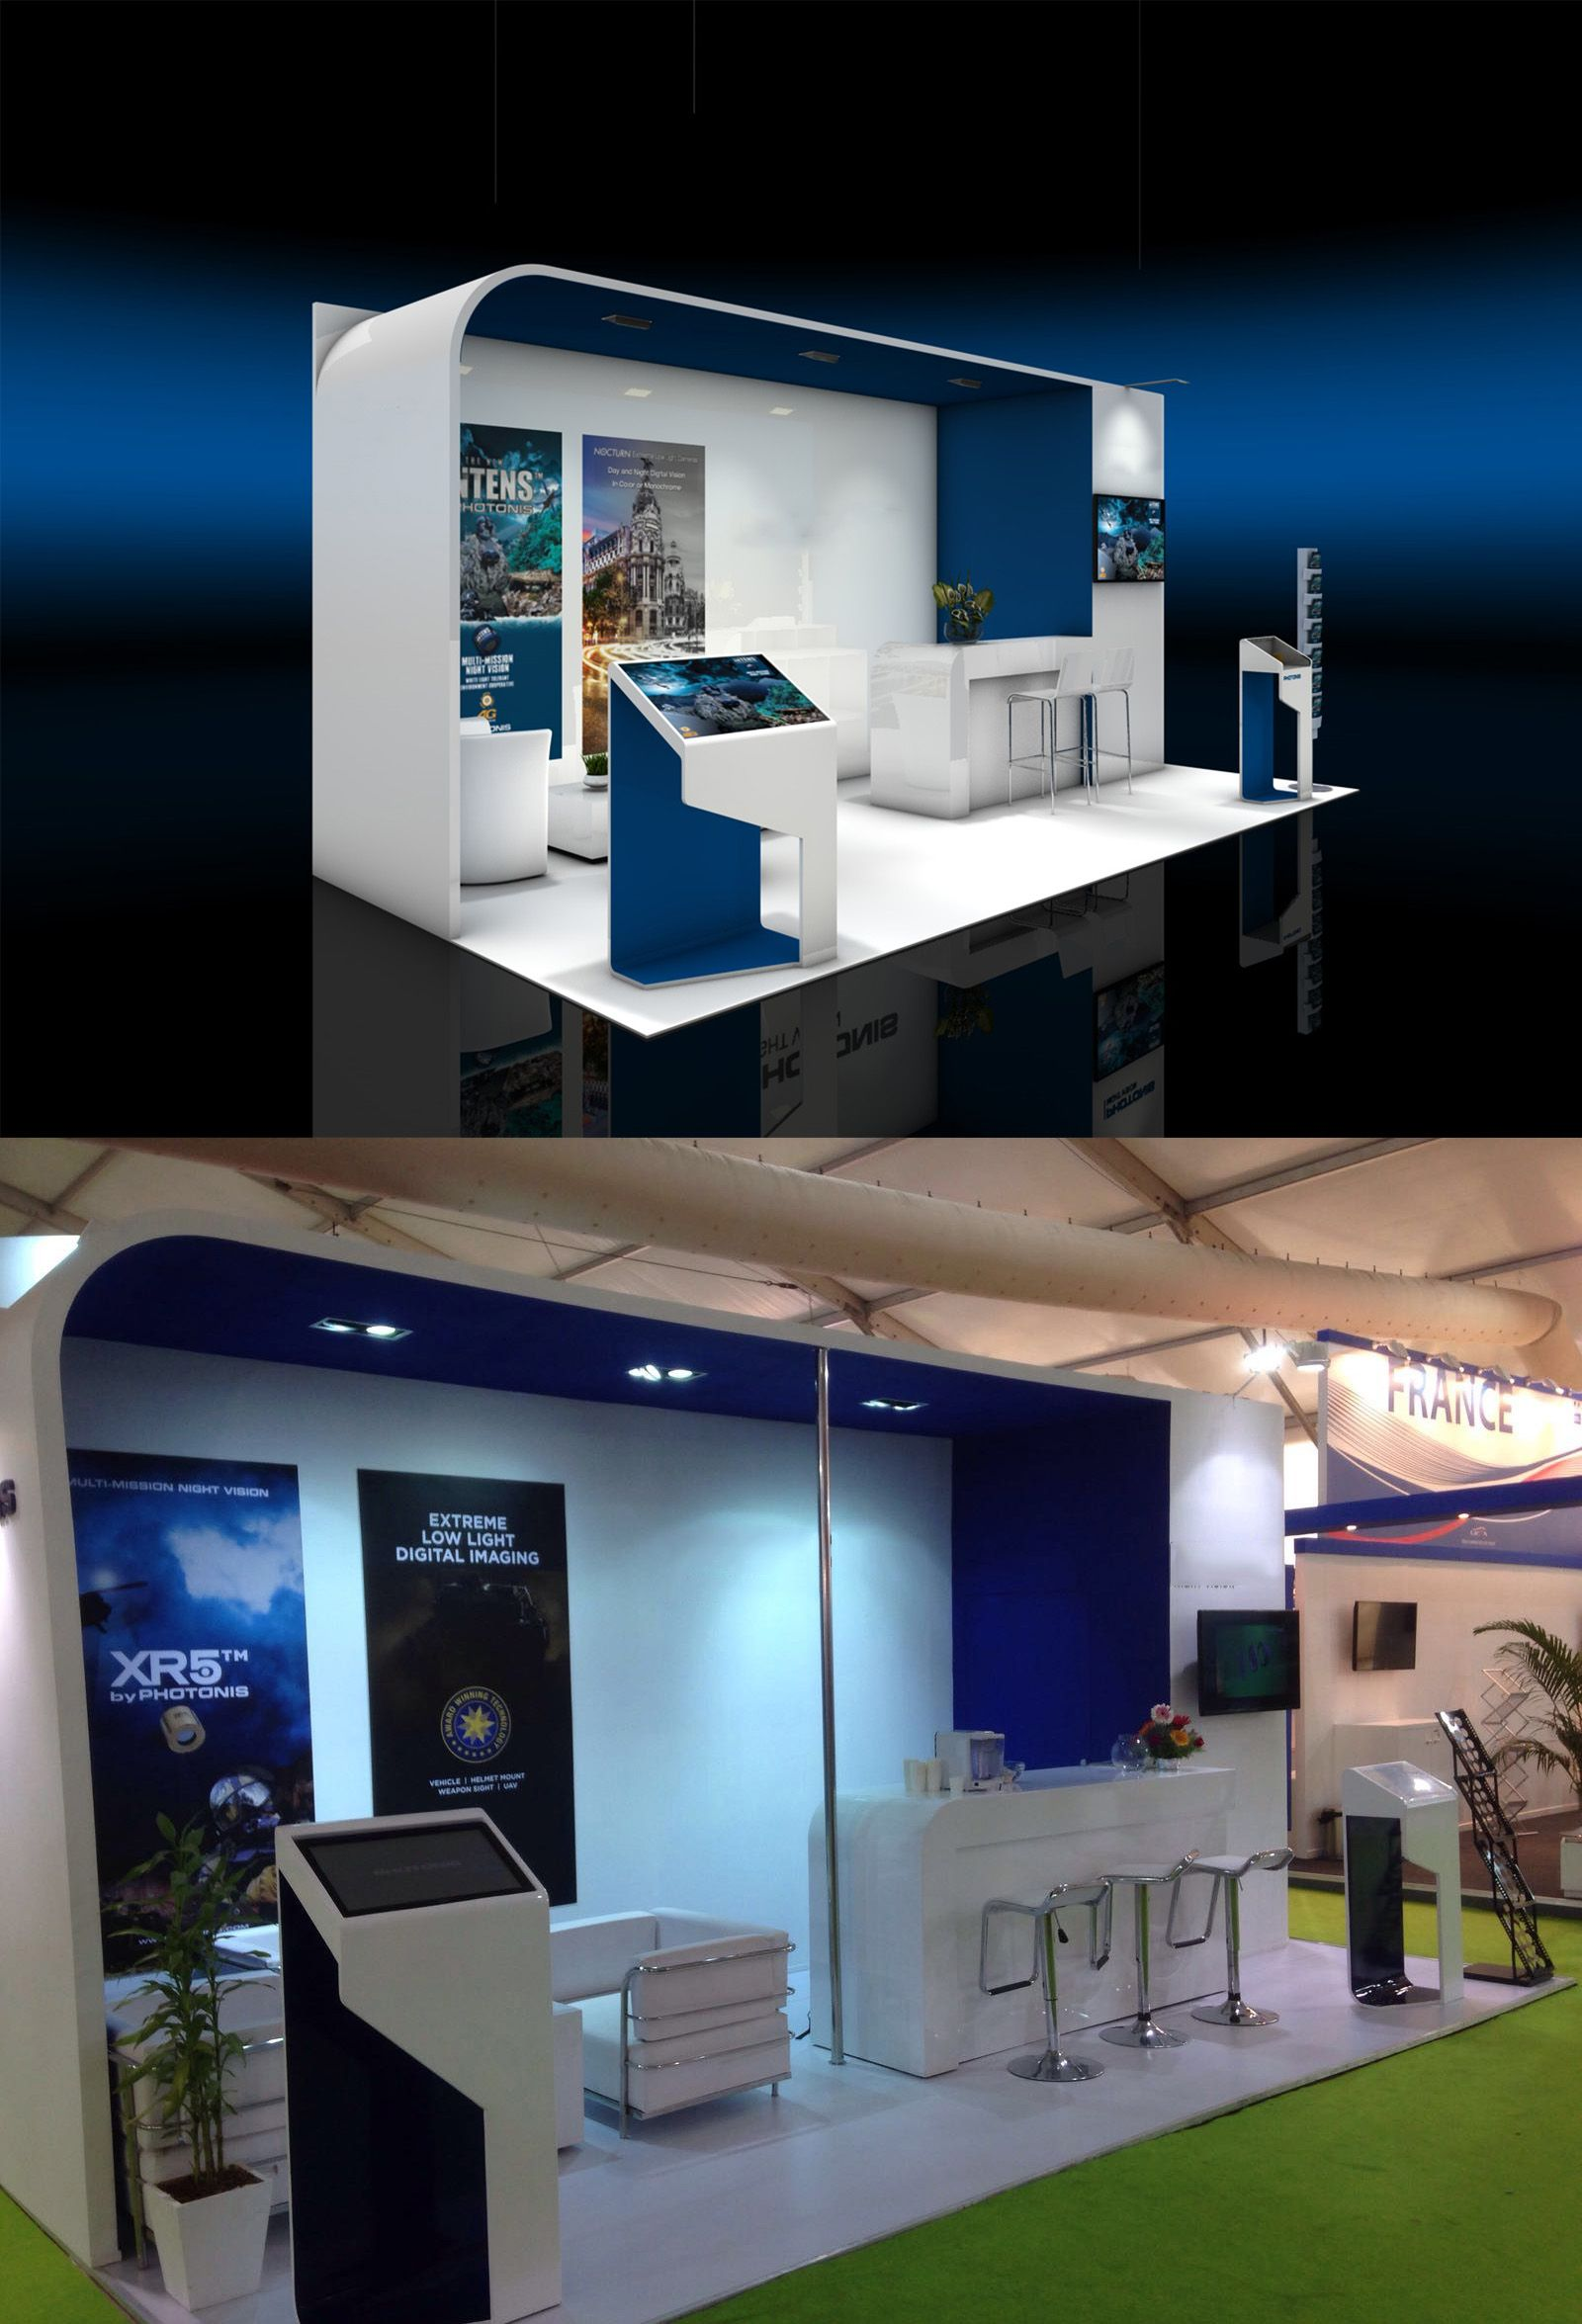 Exhibition Booth Building : Exhibition stand design and booth from the inside